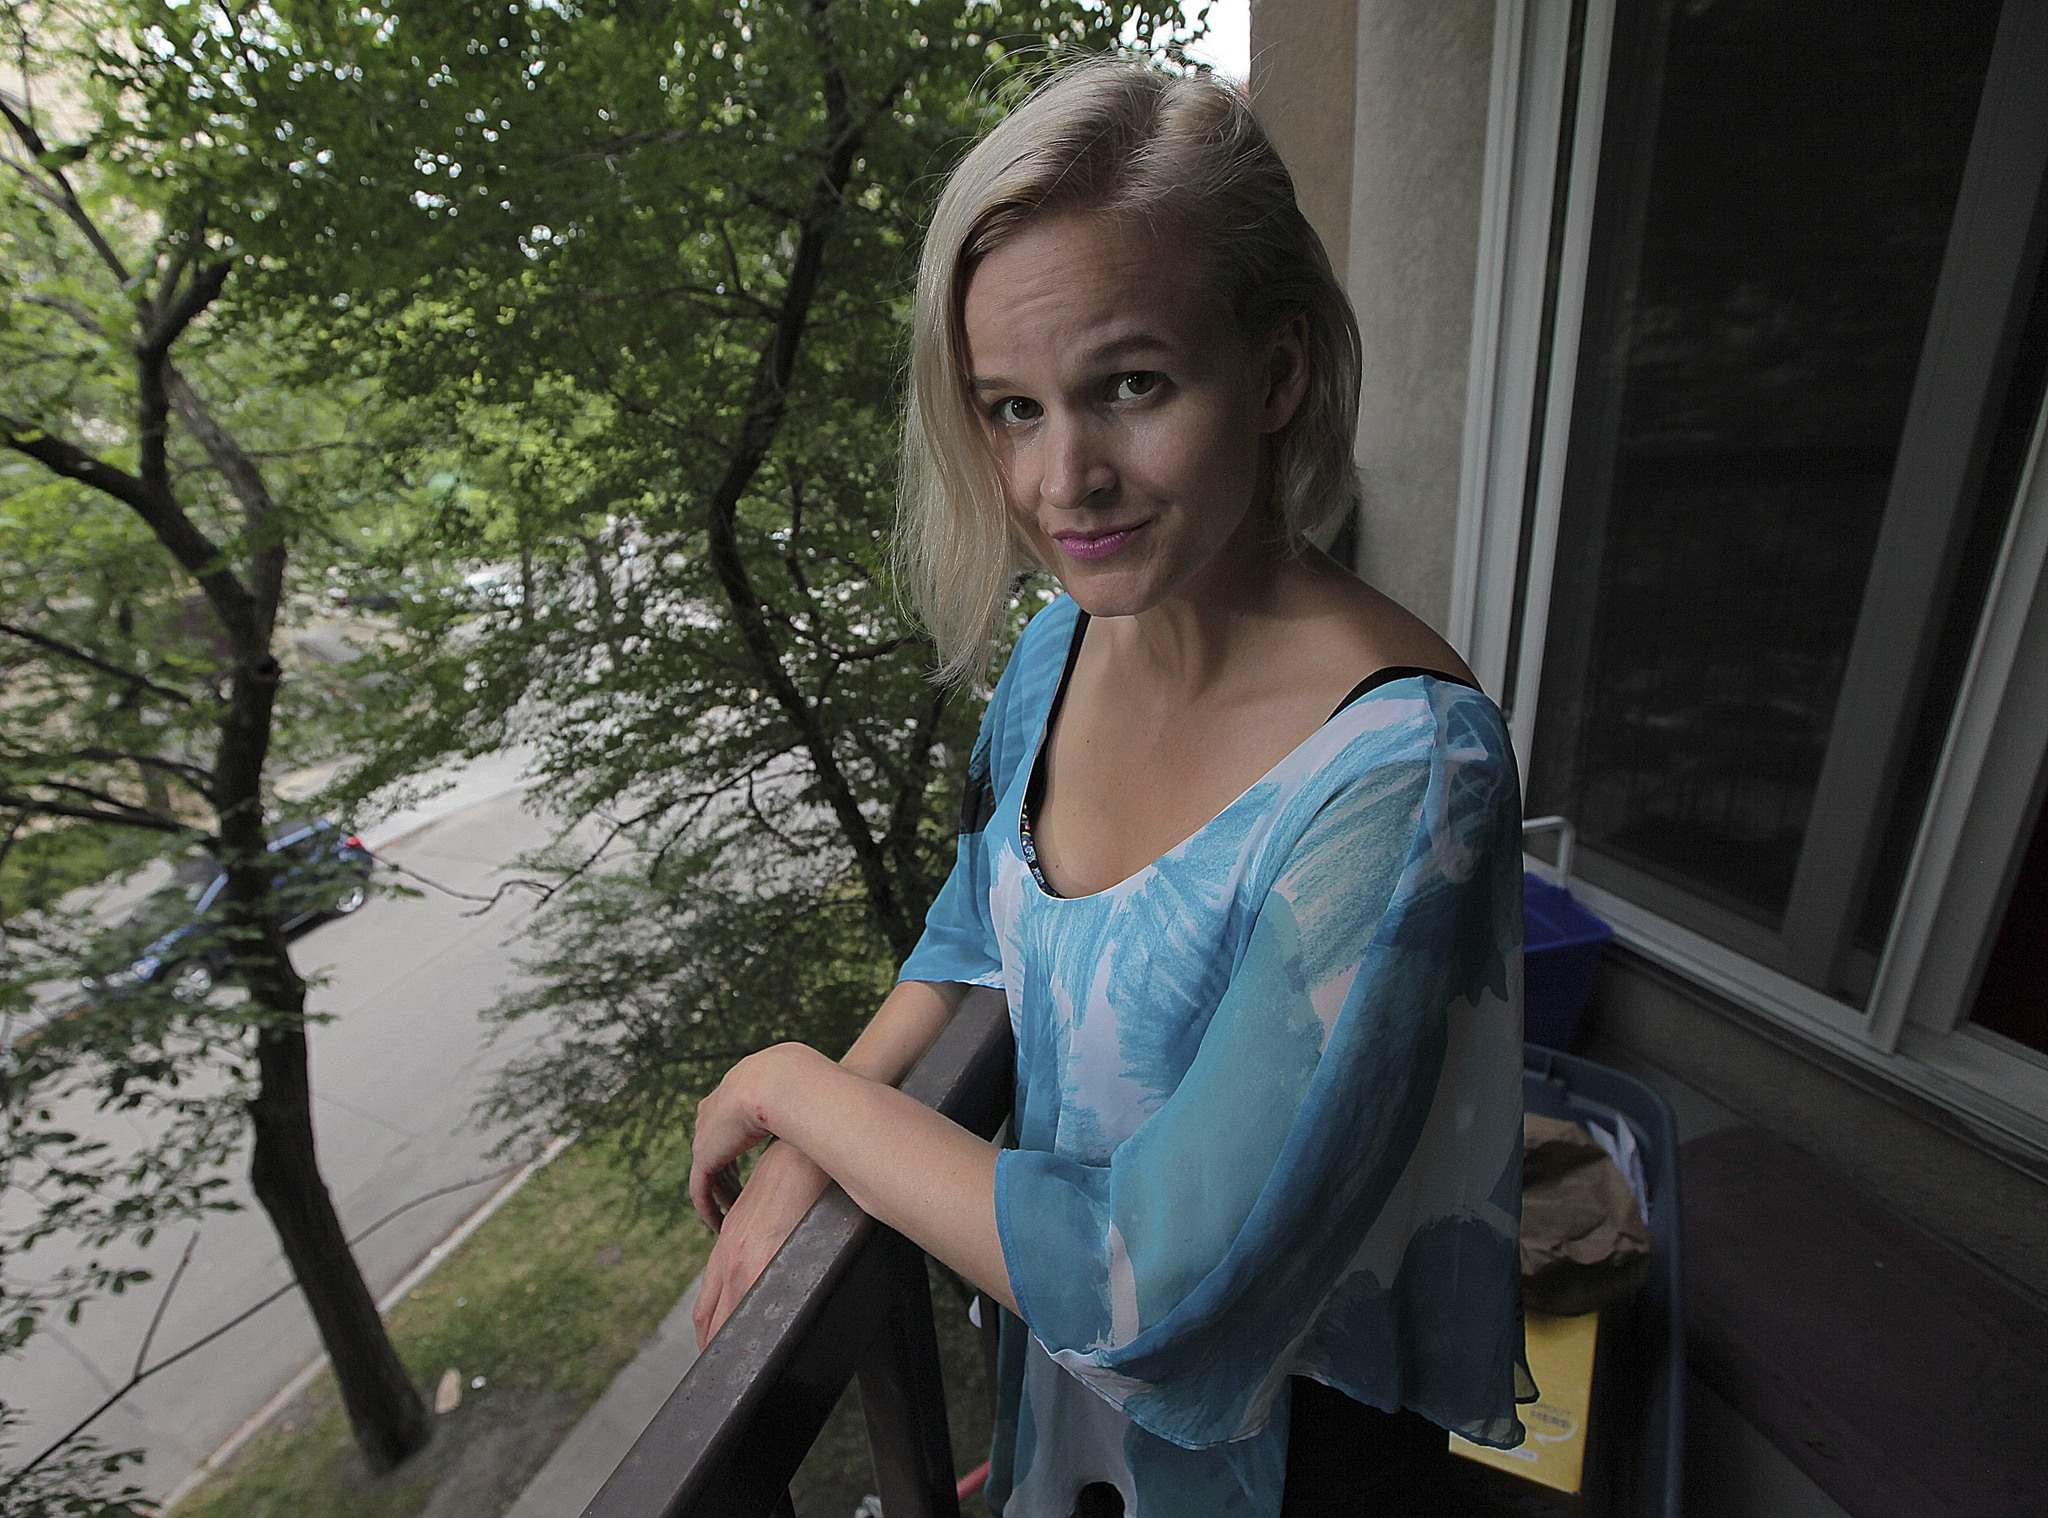 PHIL HOSSACK / WINNIPEG FREE PRESS</p><p>Yvette Jones, poses on her downtown balcony. She was robbed while walking along Notre Dame at Princess Street Monday night, but construction workers chased the suspect down and recovered her purse intact.</p>